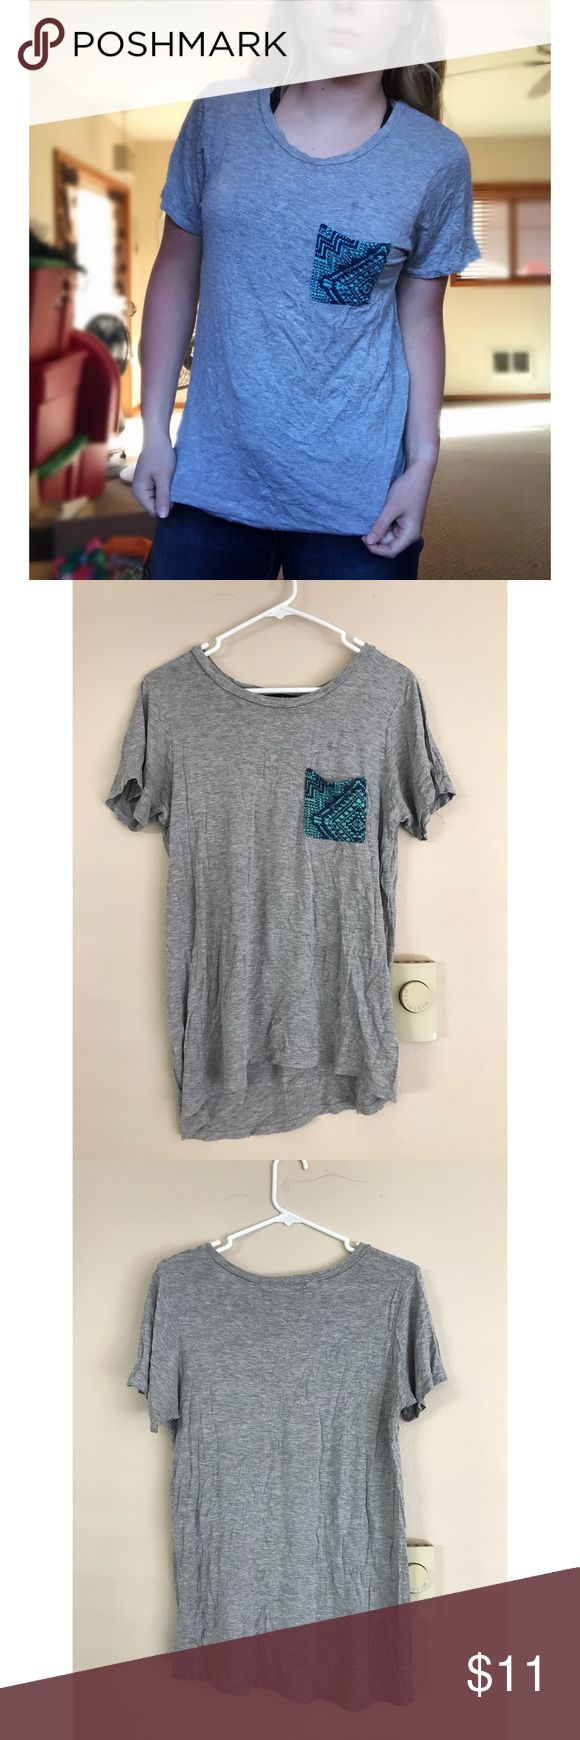 Grey tshirt w design pocket. Workshop. Size M. -Brand: Workshop -What is it?: T-shirt -Material:  Cannot read tag -Special Features   •lightweight  •stretchy  • Front pocket -Size: M -Color: Gray -Used -Flaws: Couple of dark spots above the pocket Ask if any questions!  Measurements:  Bust (underarm to underarm) =  17.5 inches Sleeve Length (from middle of back to end of sleeve) =  13 inches Length (from bottom of collar to bottom of hem) = 24 inches workshop Tops Tees - Short Sleeve